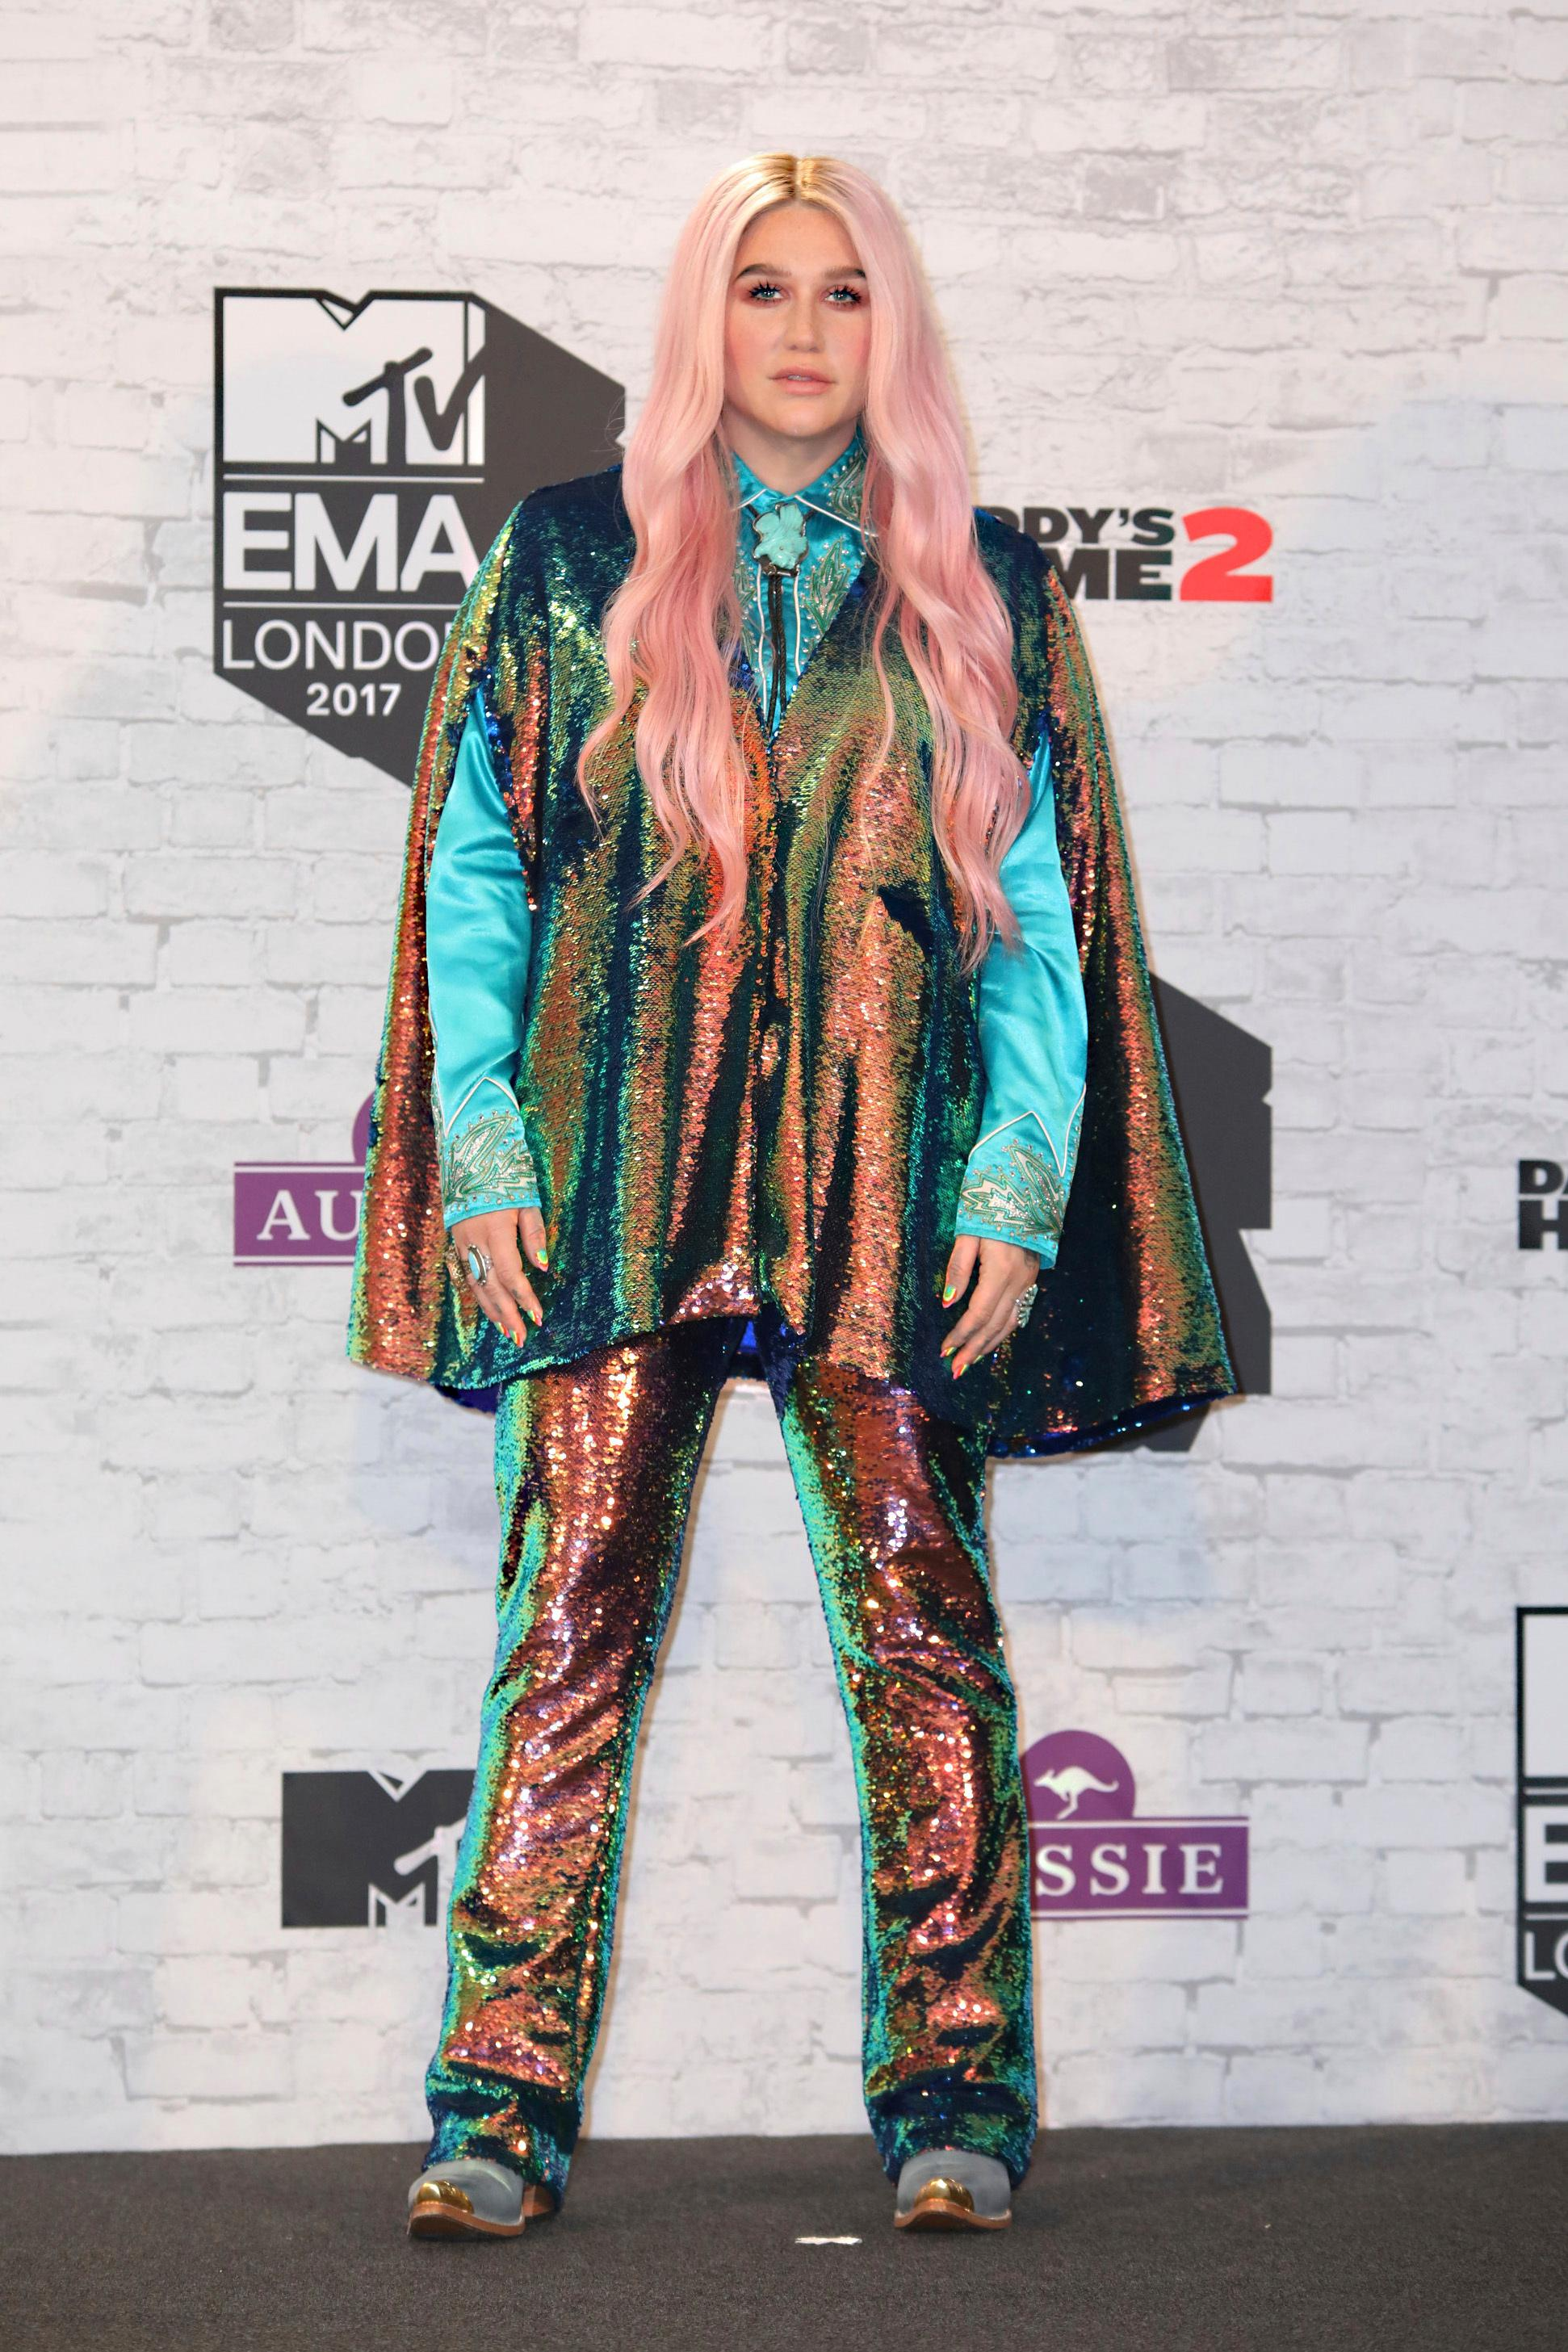 Singer Kesha poses for photographers backstage at the MTV European Music Awards 2017 in London, Sunday, Nov. 12th, 2017. (Photo by Vianney Le Caer/Invision/AP)